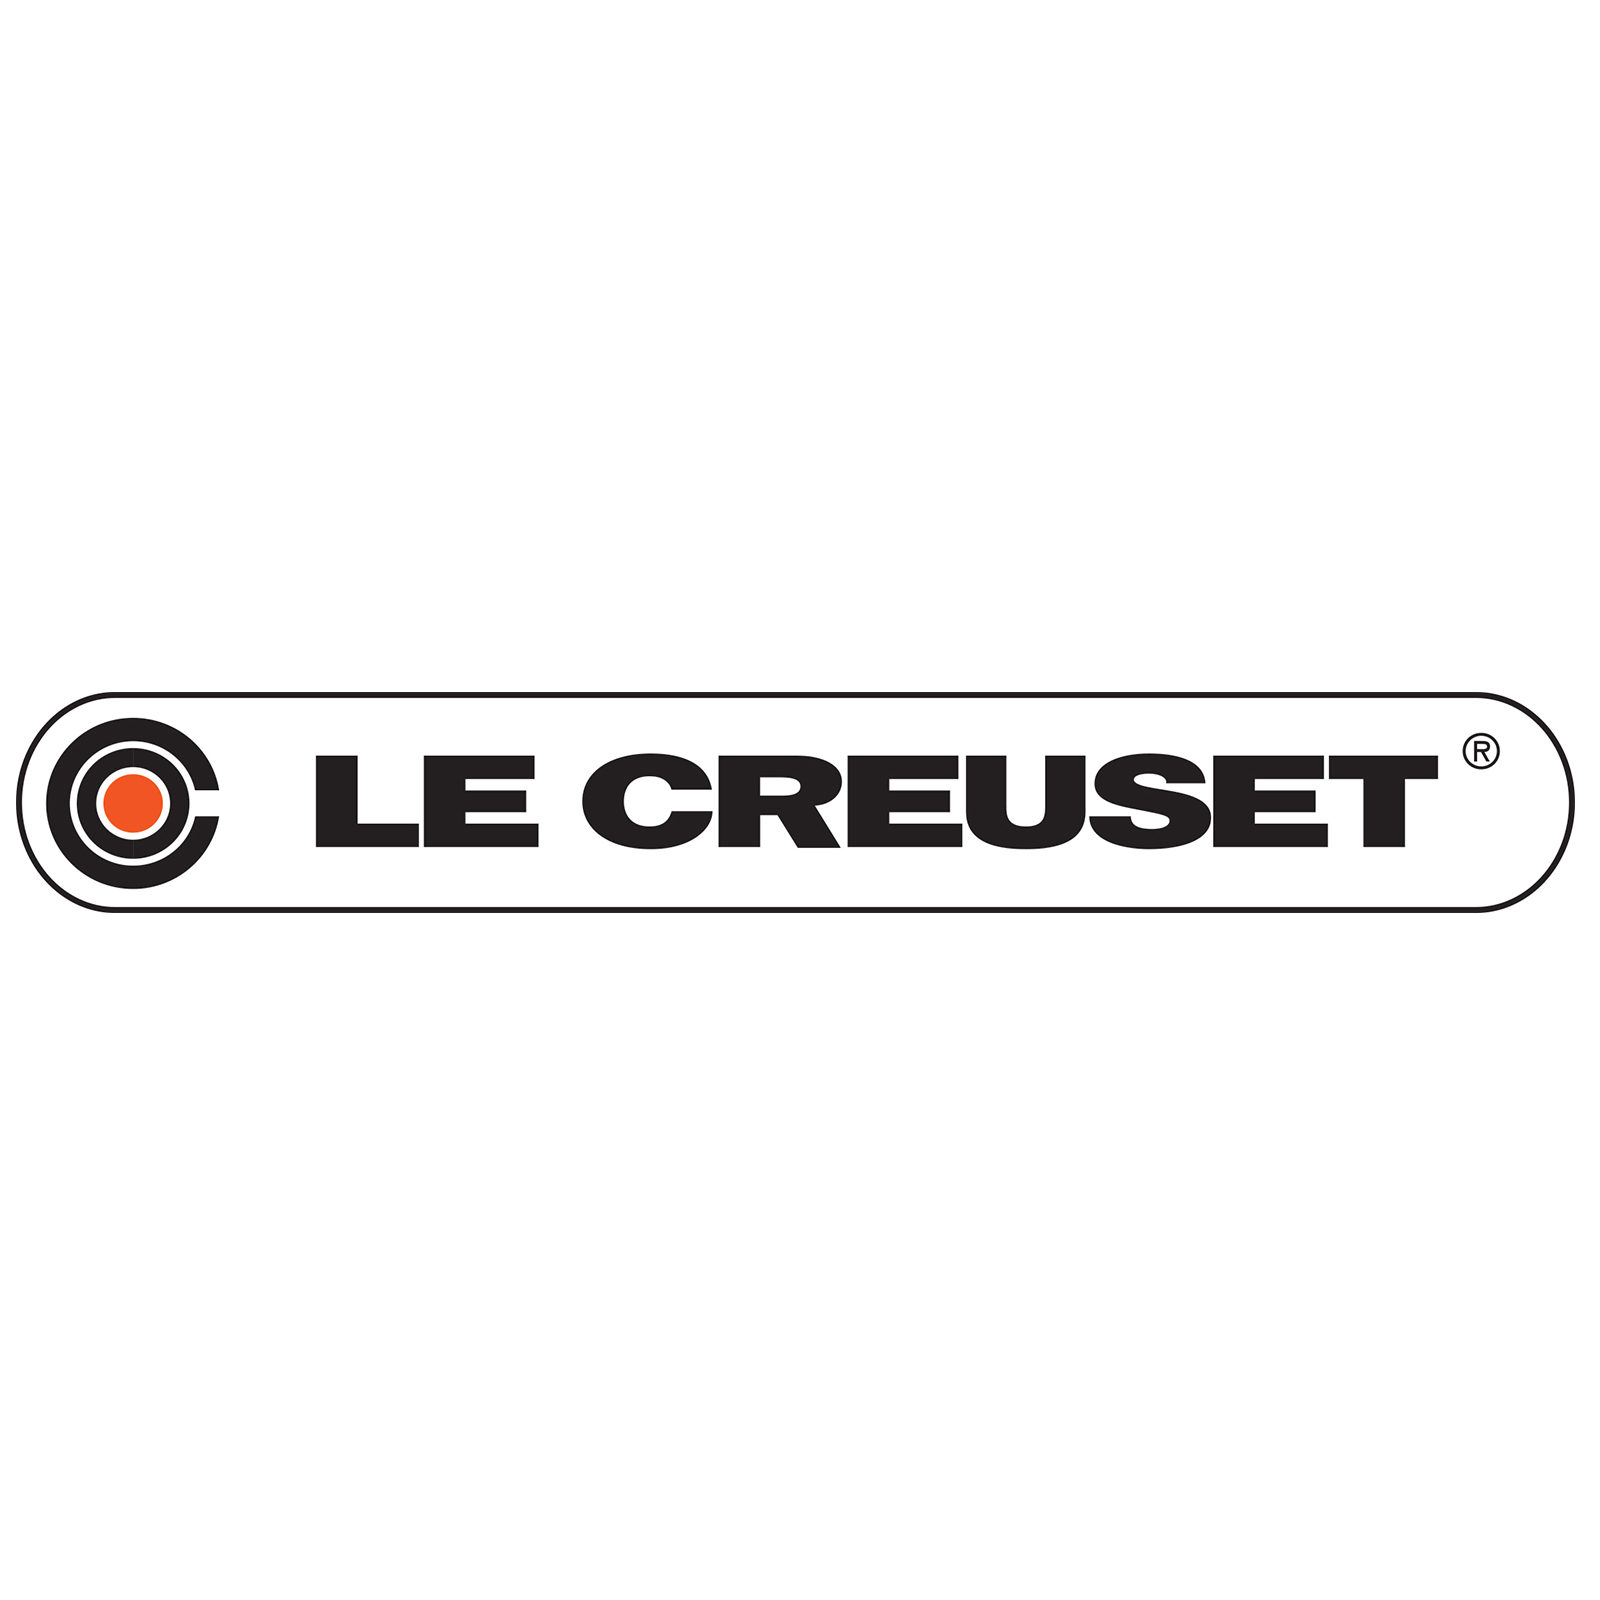 le creuset logo for the realise a dream competition to support local entrepreneurs in the food industry in cape town